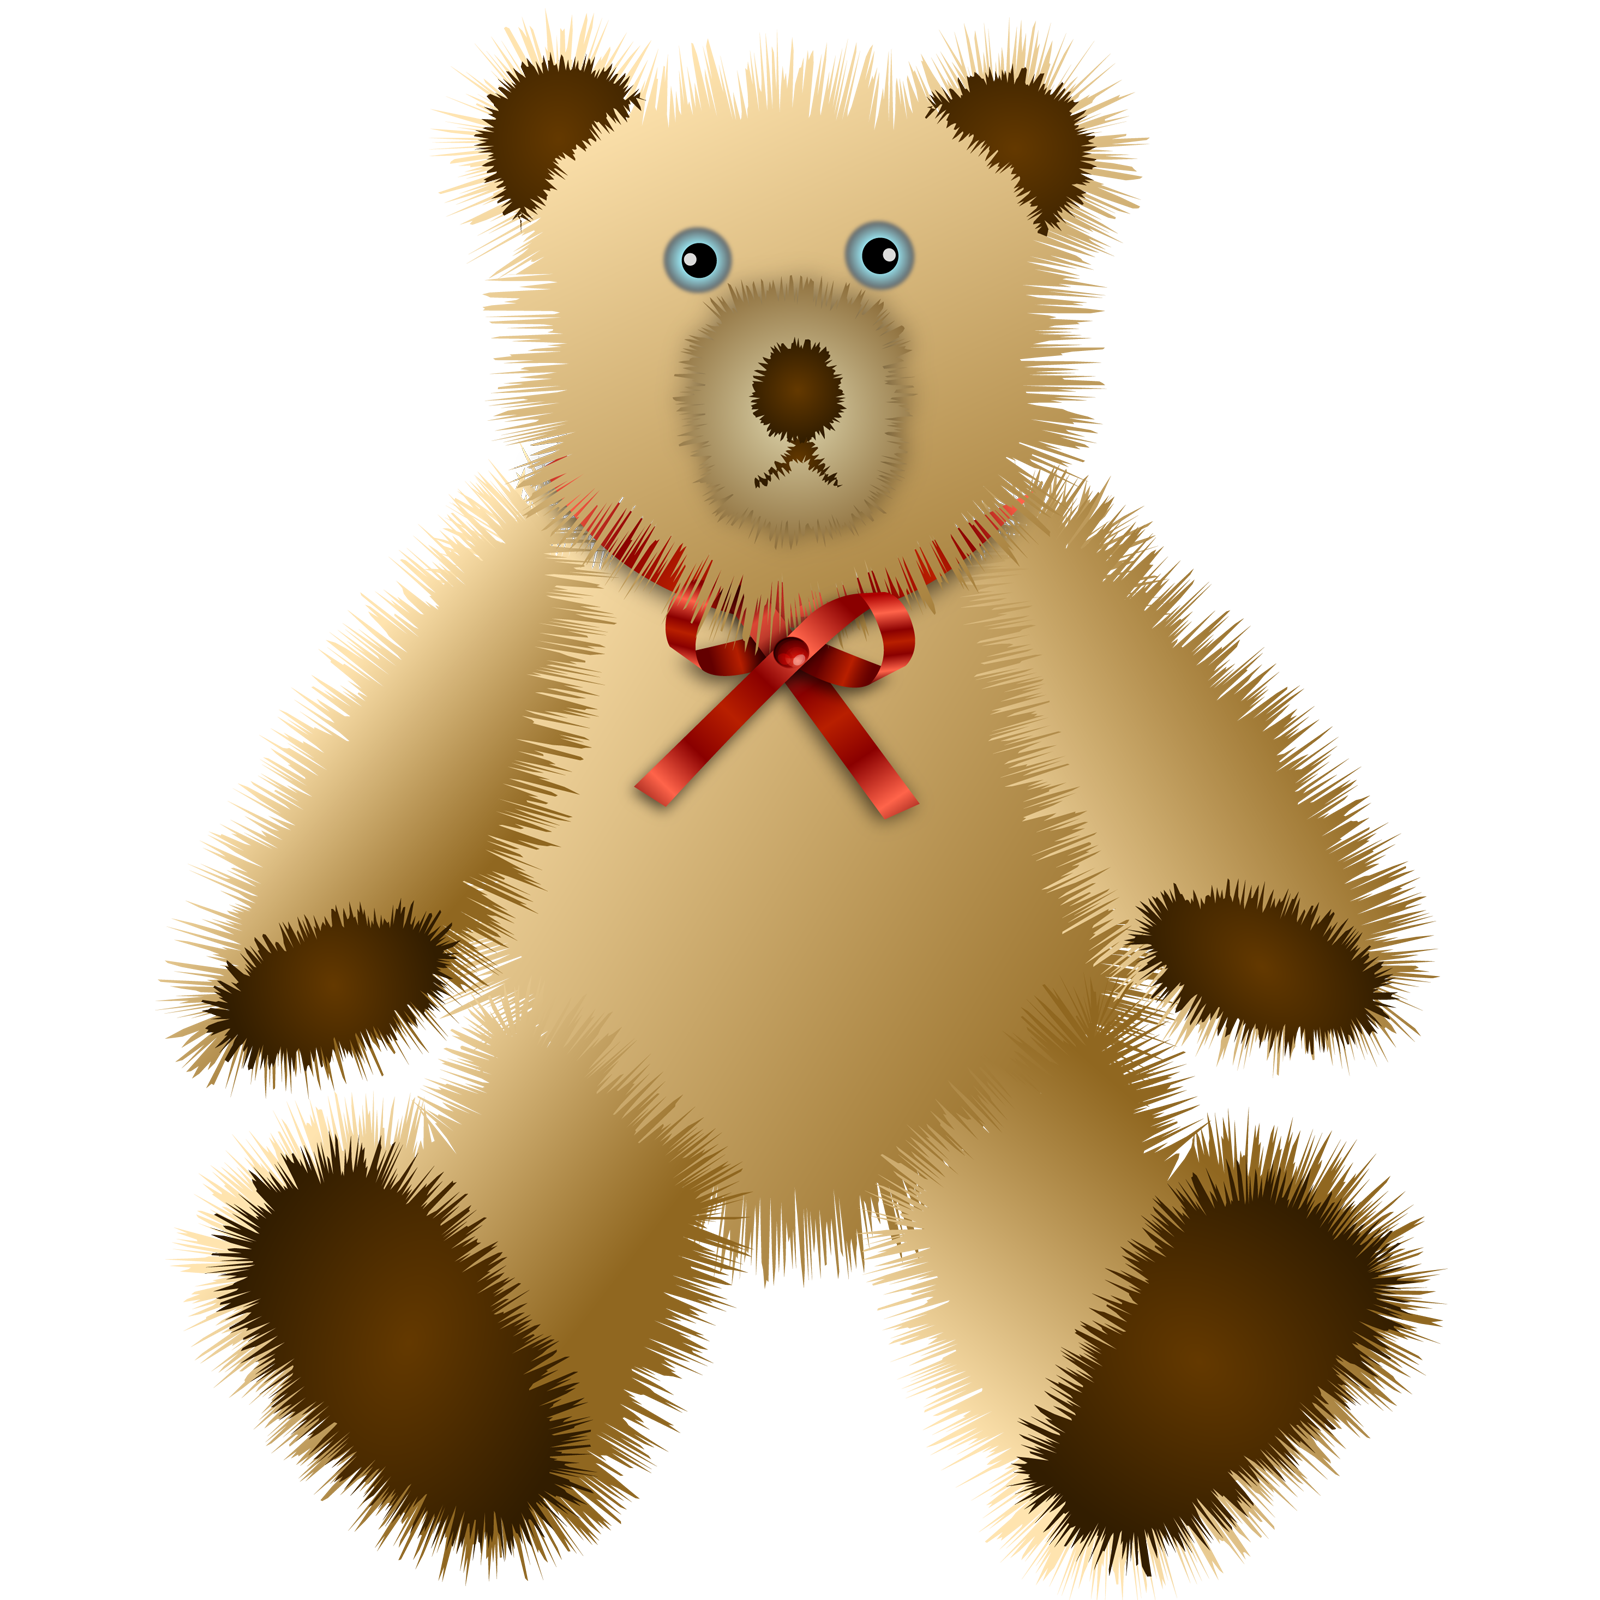 Download Free High-quality Teddy Bear Png Transparent Images